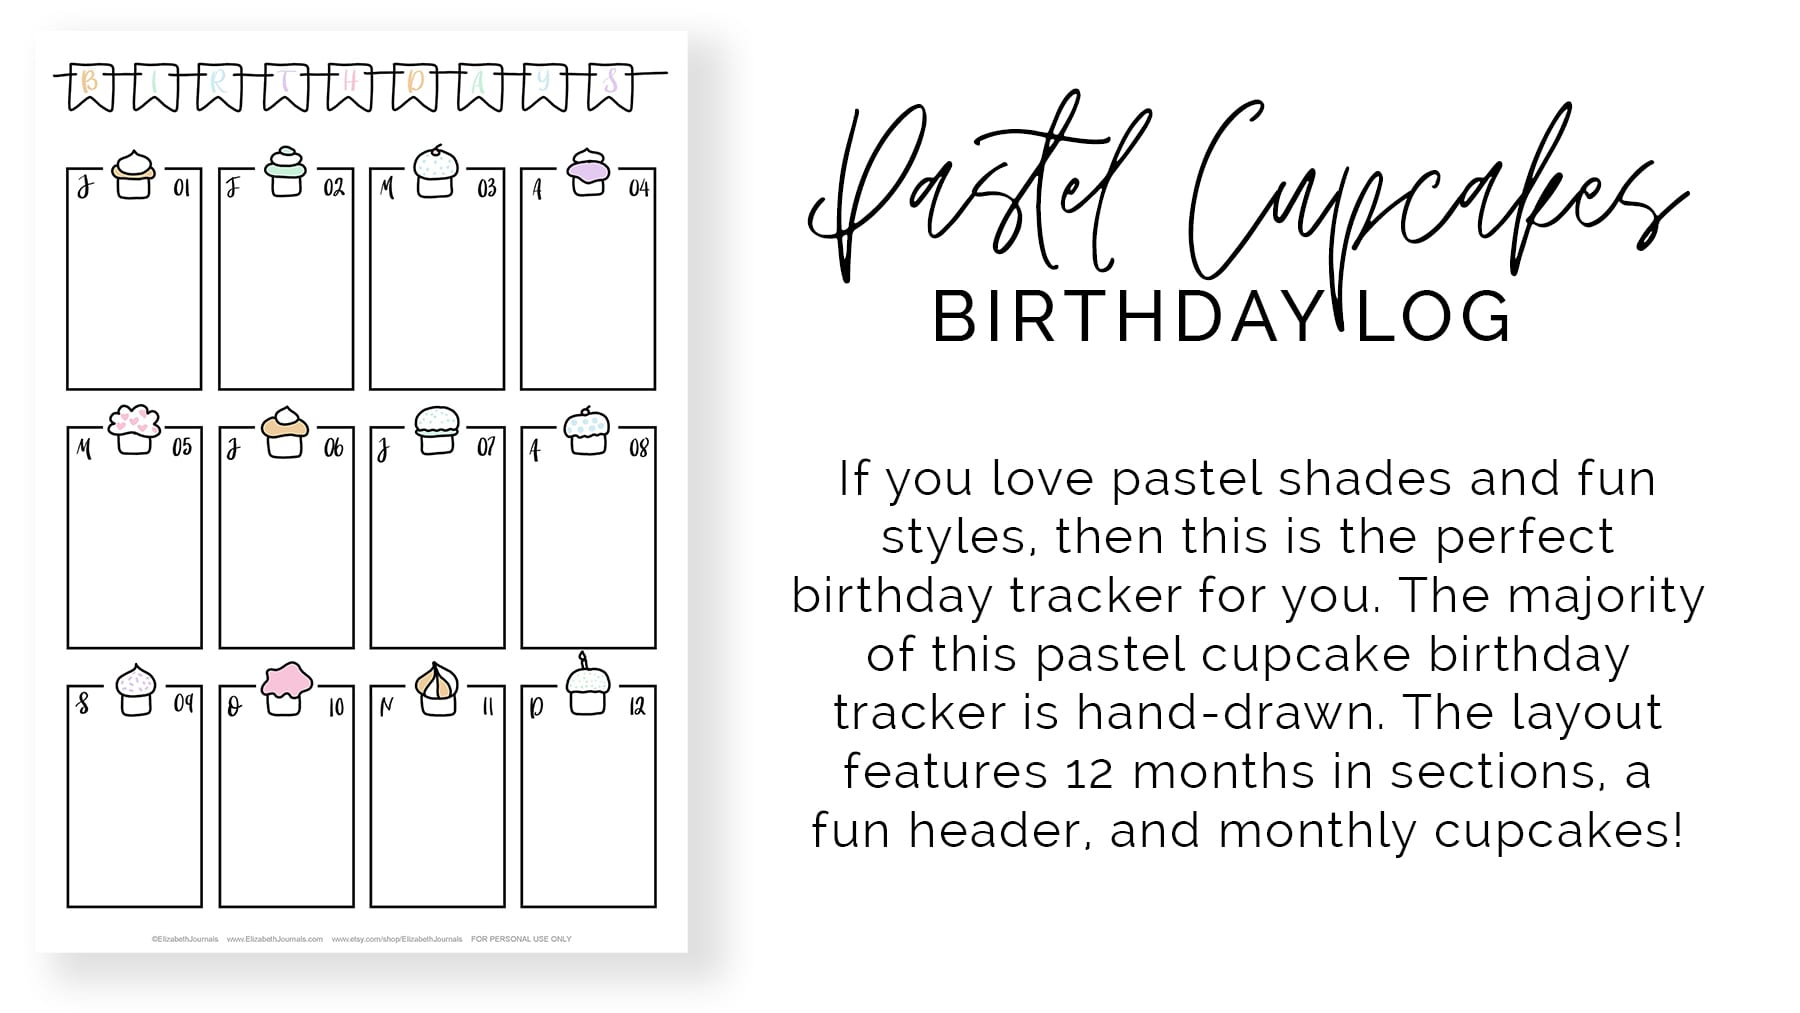 banner-pastel-cupcakes-birthday-log-If you love pastel shades and fun styles then this is the perfect birthday tracker for you_The majority of this pastel cupcake birthday tracker is hand-drawn